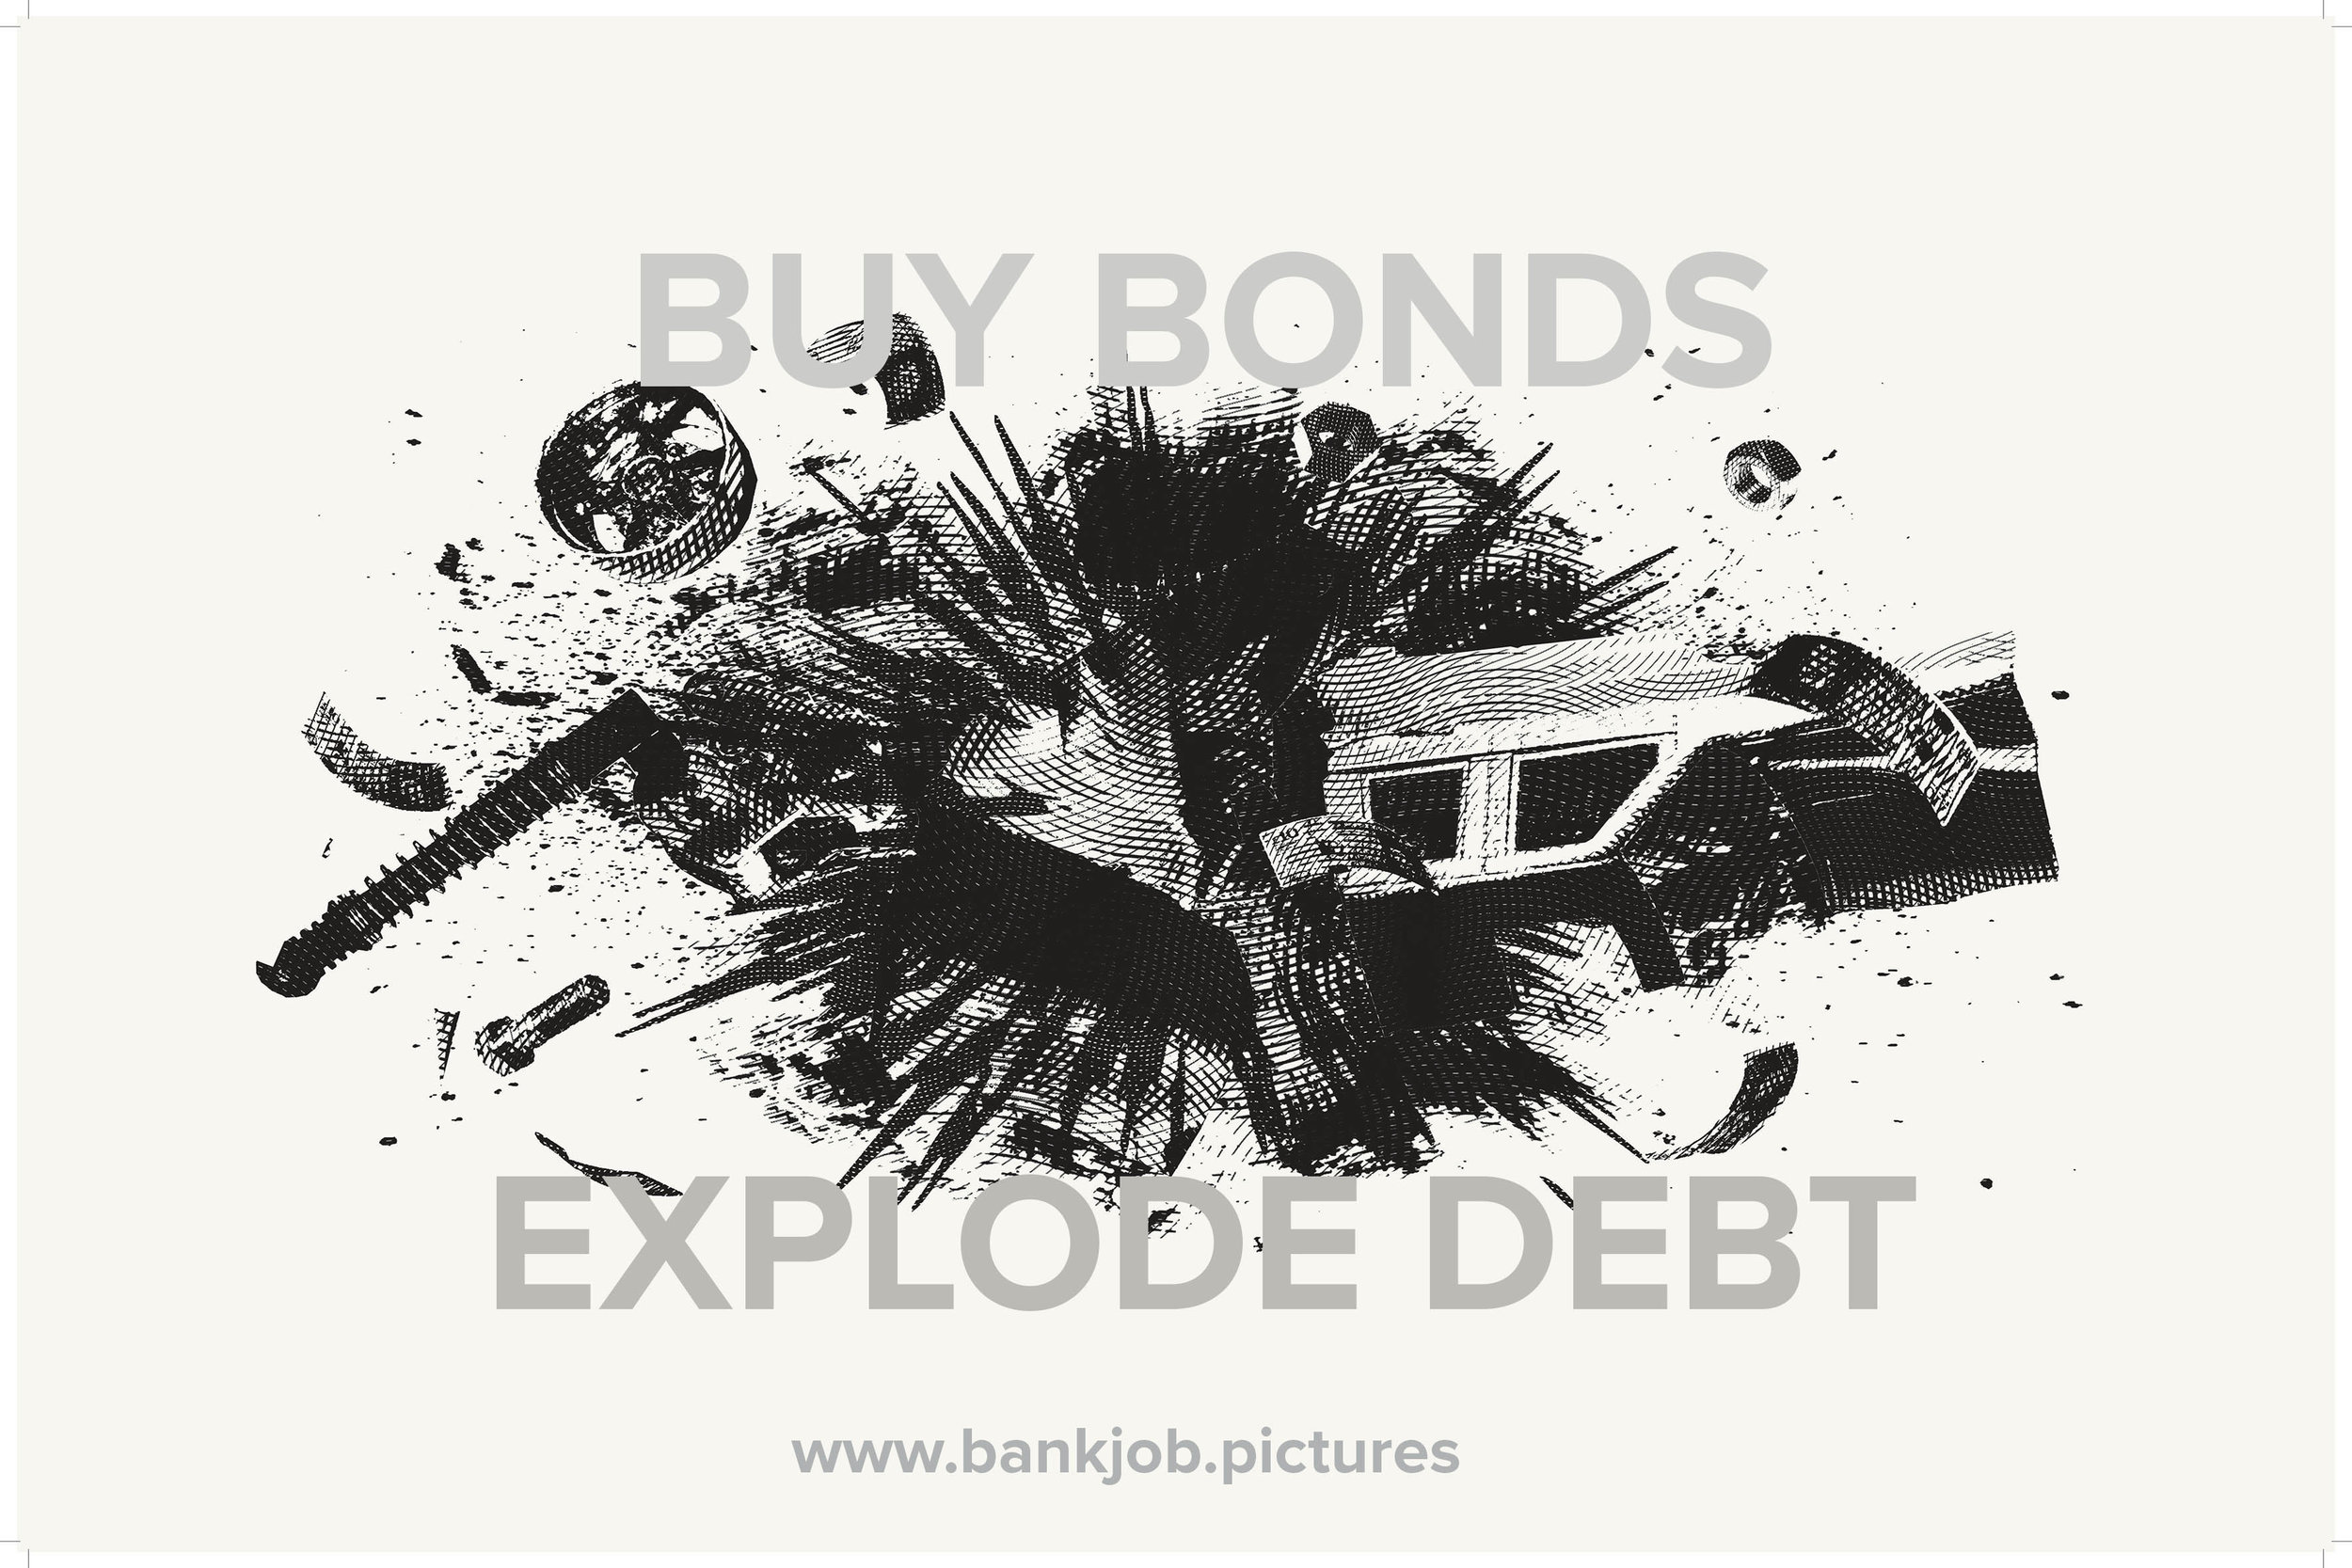 BUYING BONDS FINANCES THIS EXPLOSION - ITS FILMING, EXHIBITION TRANSFORMATION AND DISTRIBUTION. IT INCREASES THE IMPACT OF THIS ACT OF DEBT CANCELLATION AND EXPLODES THE CONVERSATION INTO PUBLIC CONSCIOUSNESS.